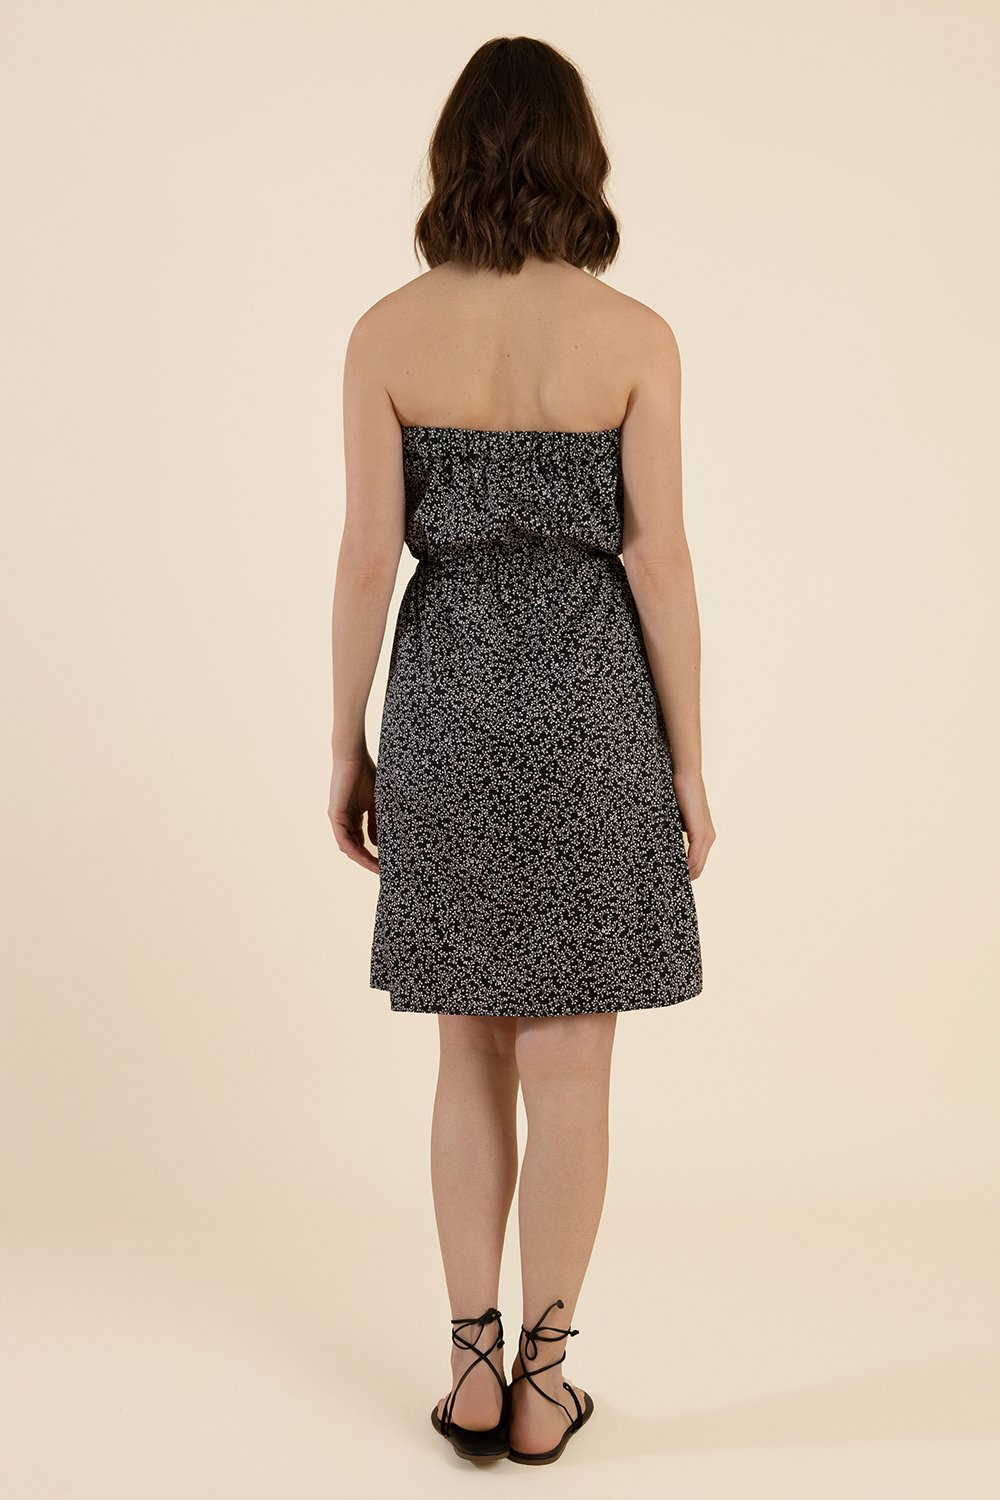 Strapless Cotton Dress  - Black - Cat Turner